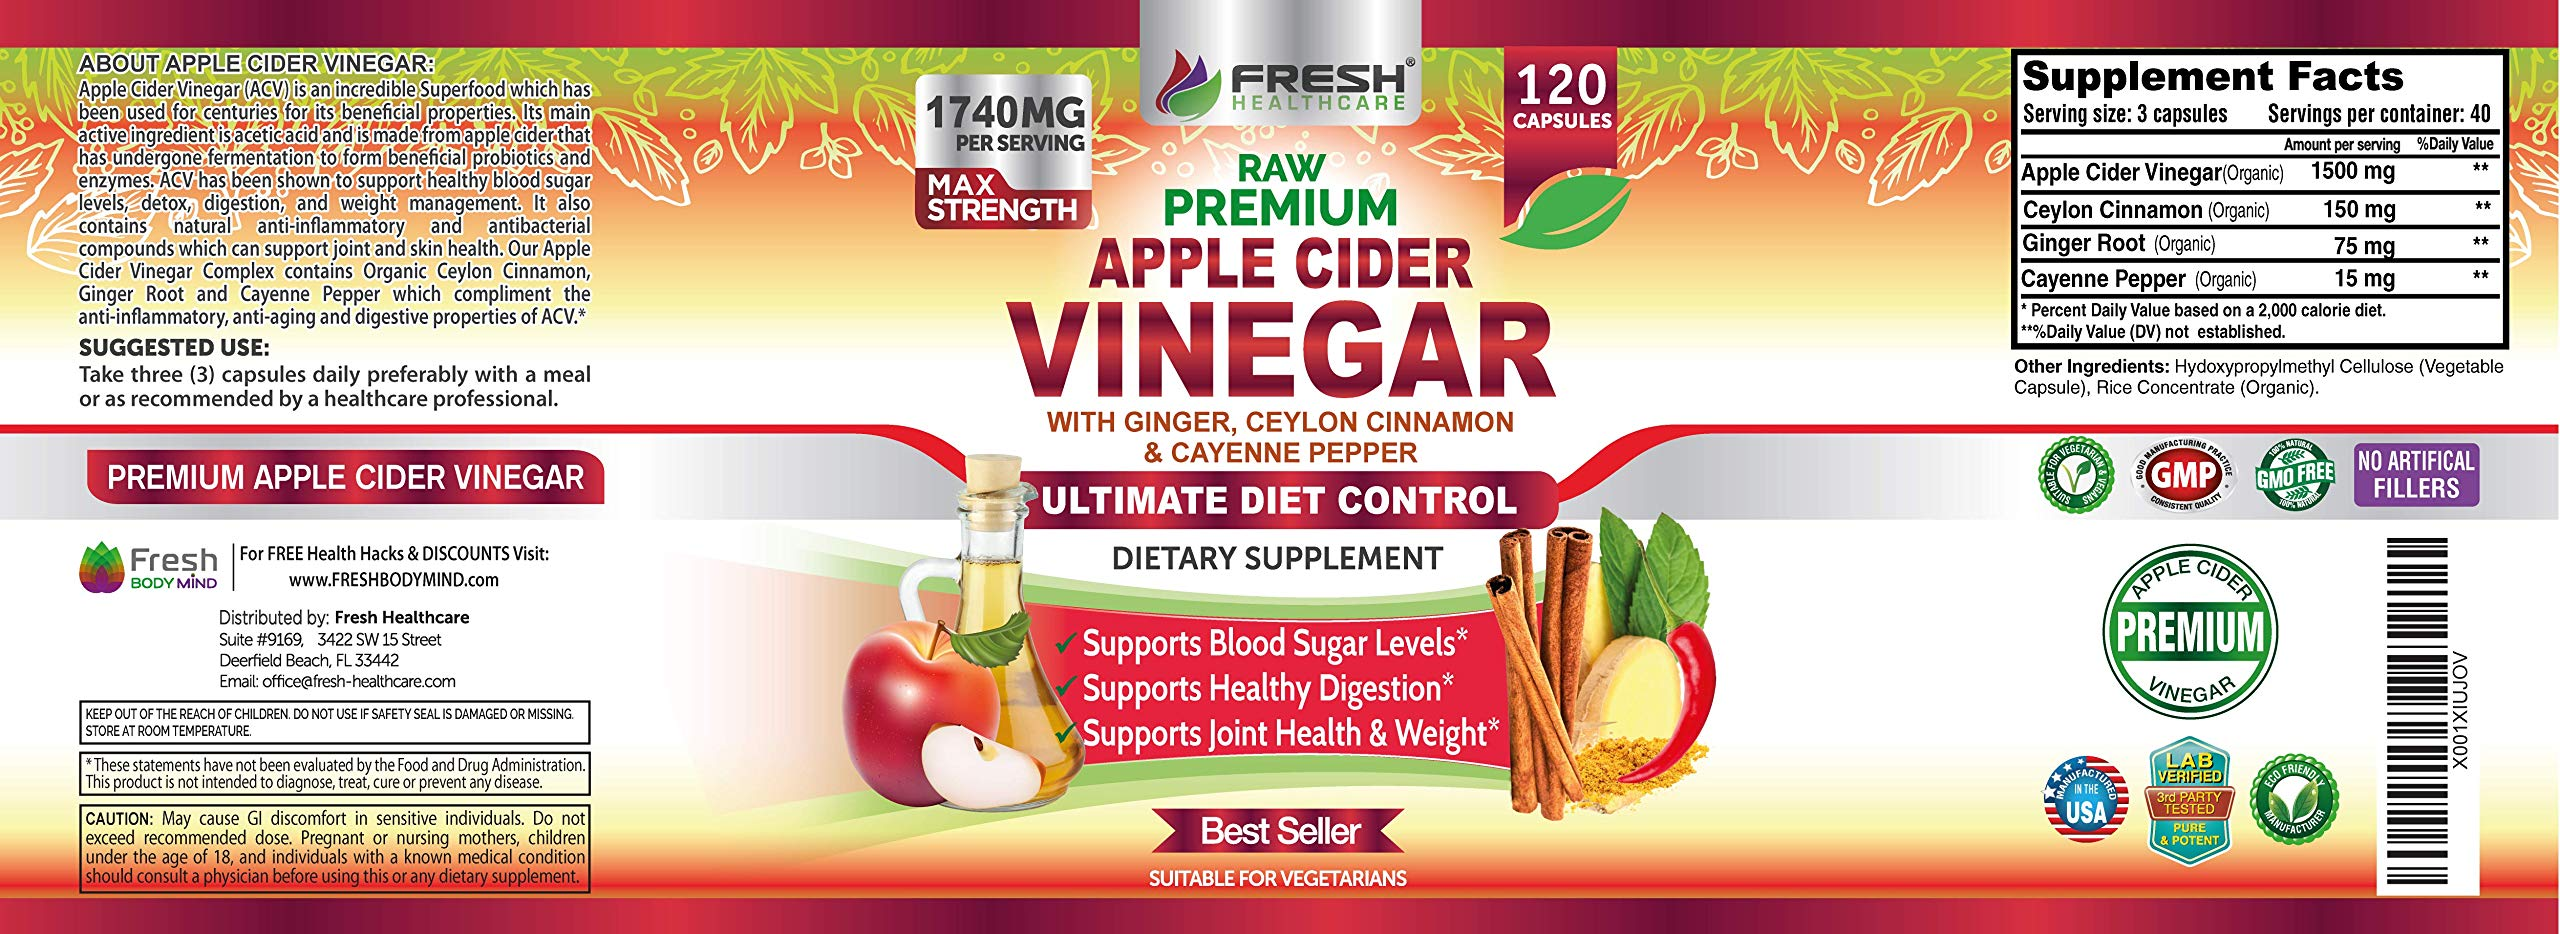 Organic Apple Cider Vinegar Pills Max 1740mg with Mother - 100% Natural & Raw with Ceylon Cinnamon, Ginger & Cayenne Pepper - Ideal for Healthy Blood Sugar, Detox & Digestion-120 Vegan Capsules by FRESH HEALTHCARE (Image #7)